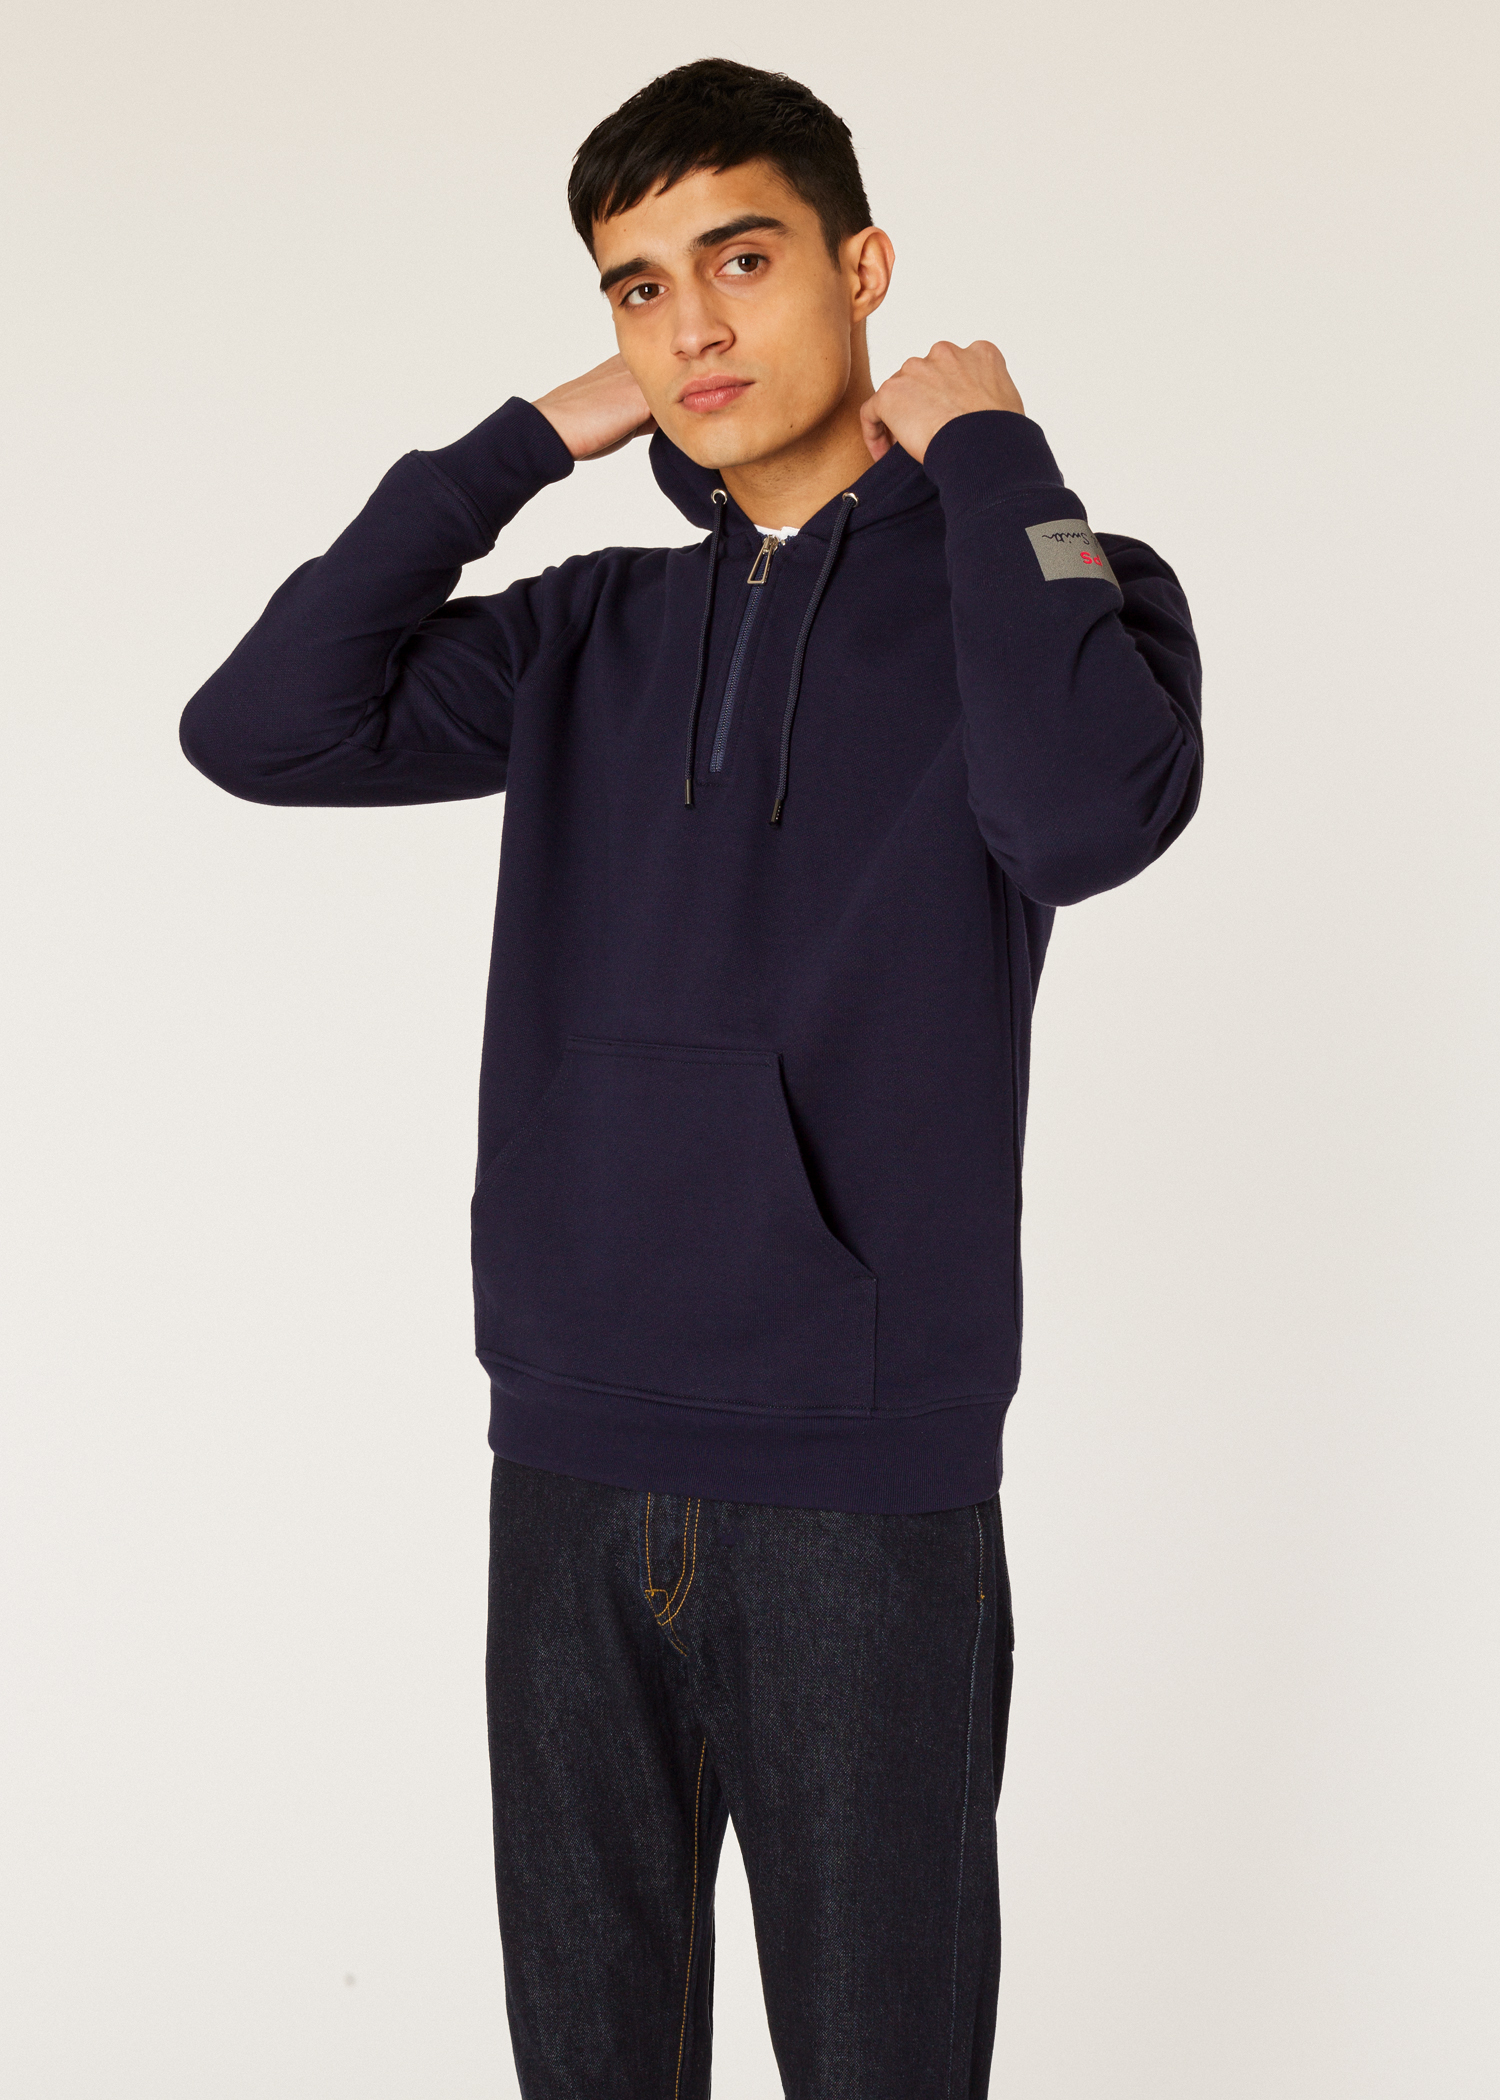 ffa7ef70fb700f Model front close up - Men's Navy Half-Zip Cotton Hoodie Paul Smith